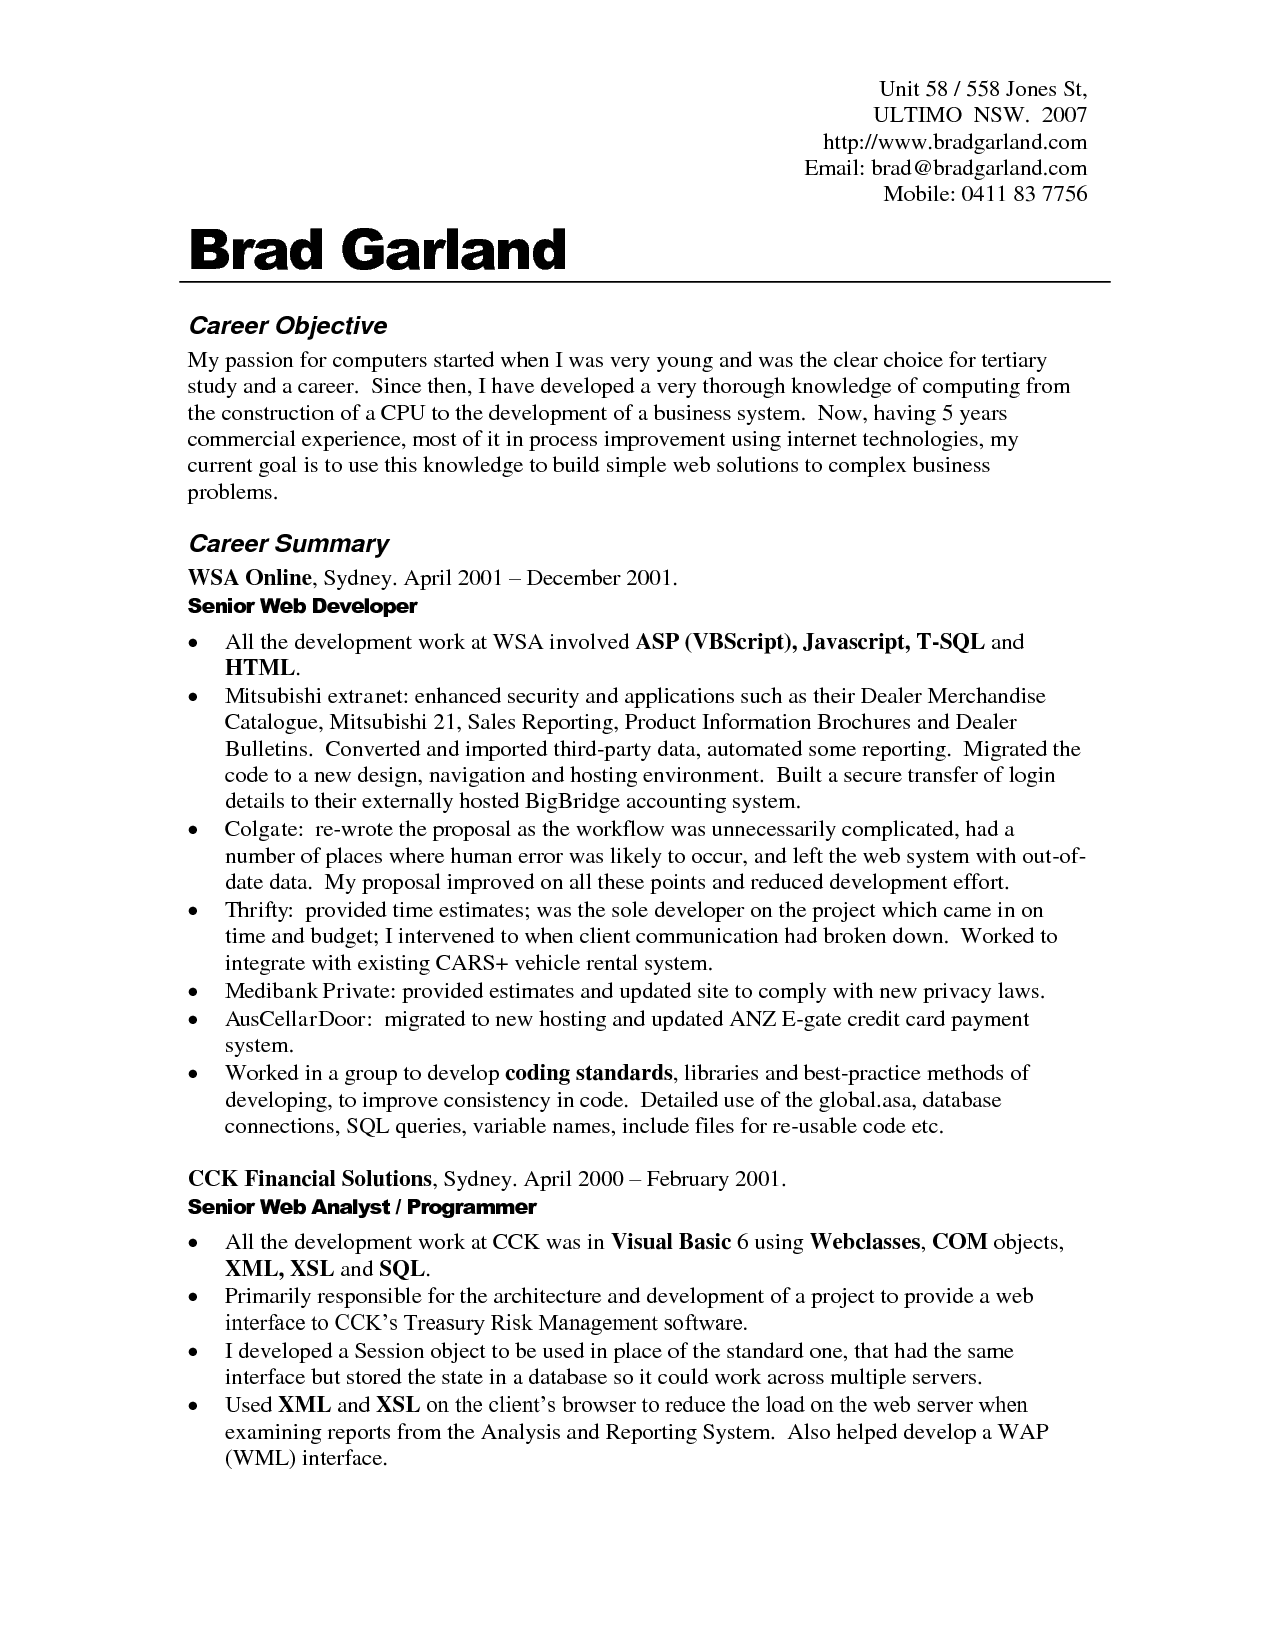 career objective for resume and career objectives statement senior web developer